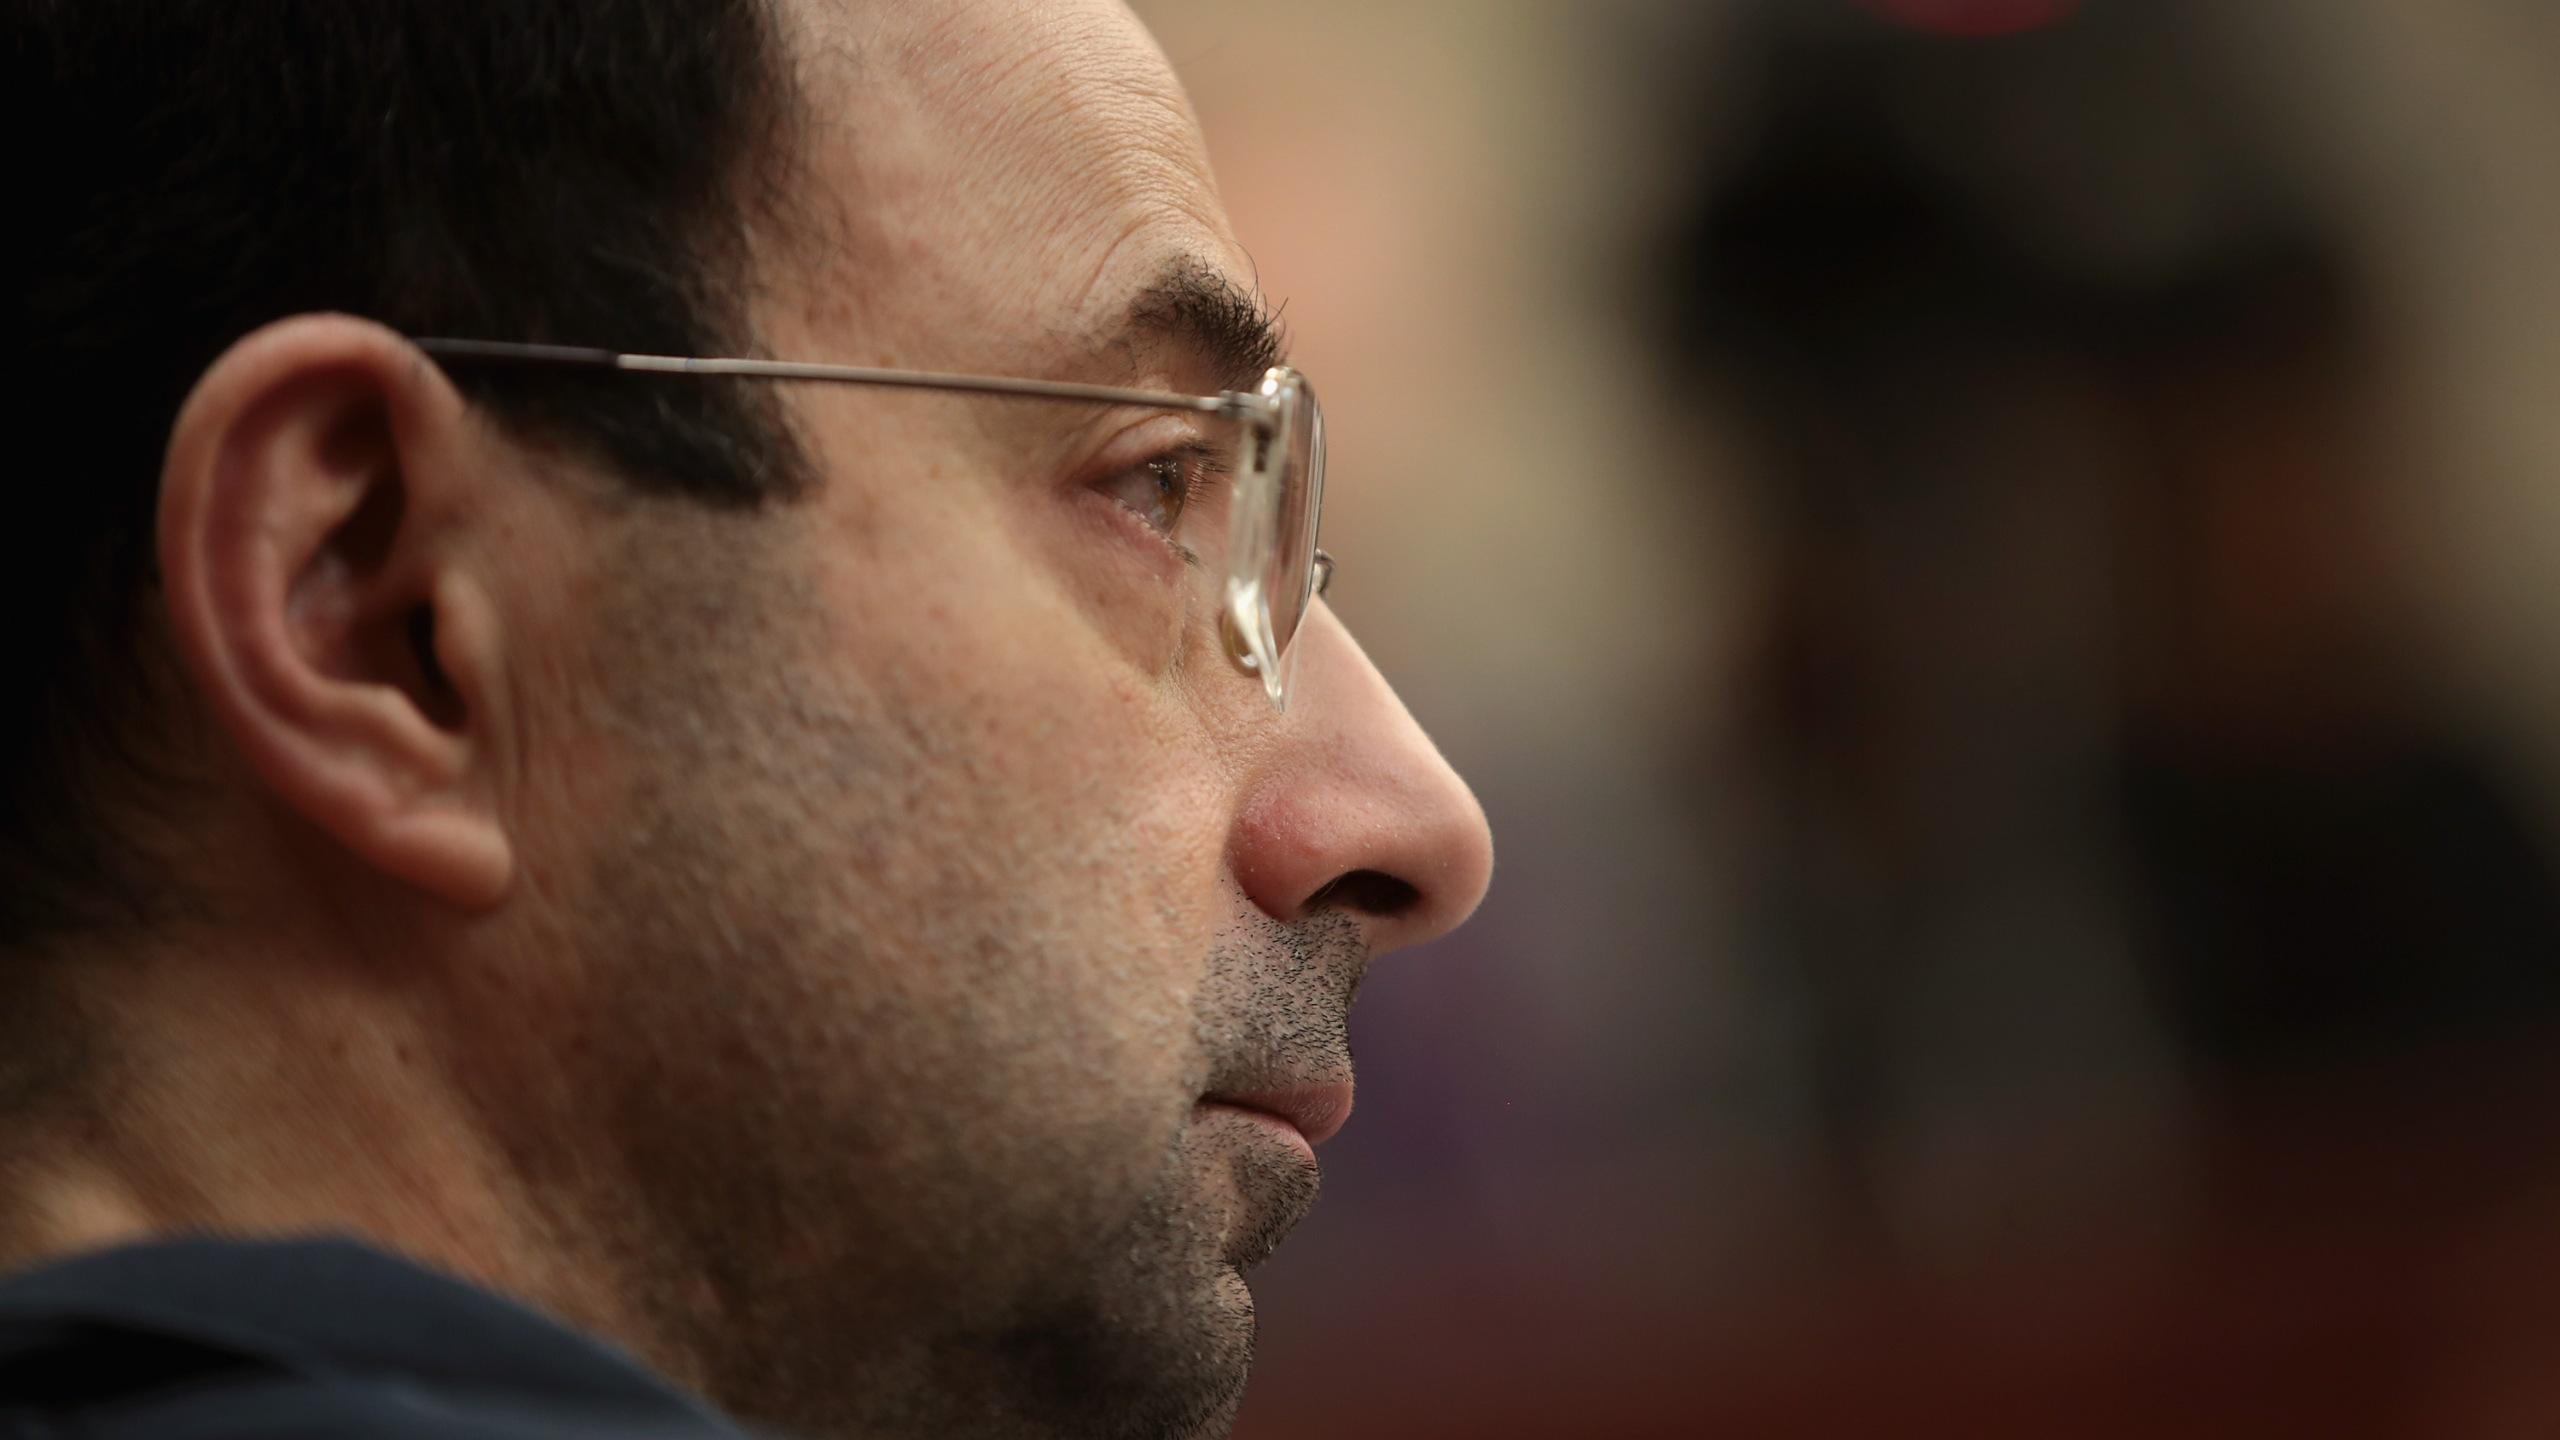 Larry Nassar listens to victim impact statements on January 17, 2018 during his sentencing hearing after being accused of molesting more than 100 girls while he was a physician for USA Gymnastics and Michigan State University. (Credit: Scott Olson/Getty Images)